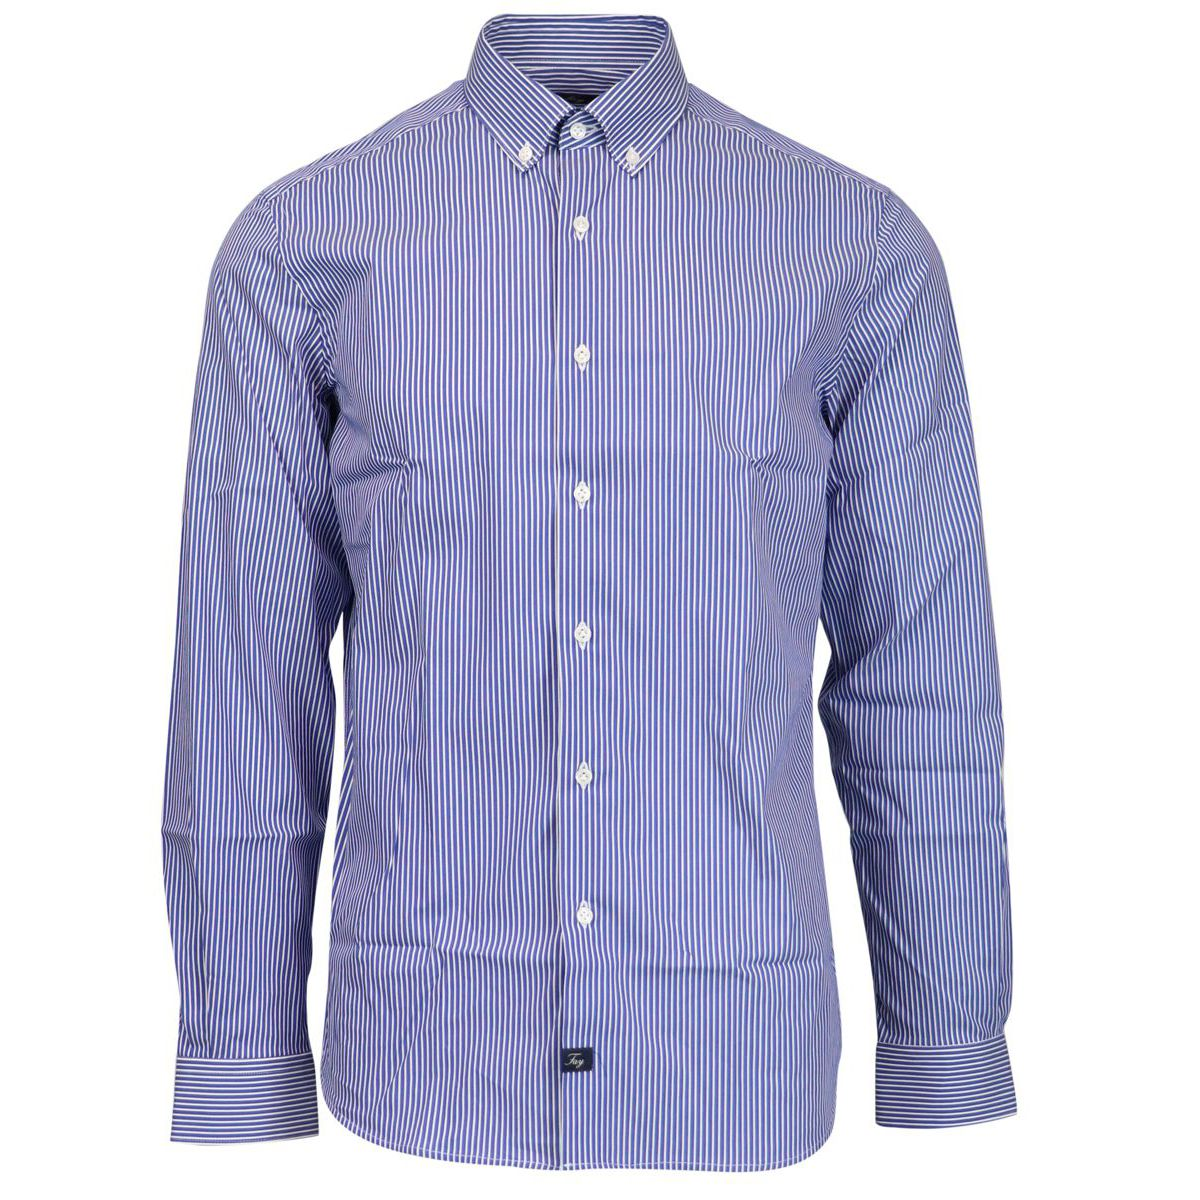 Striped slim-fit button-down shirt in cotton B.co/blu Fay